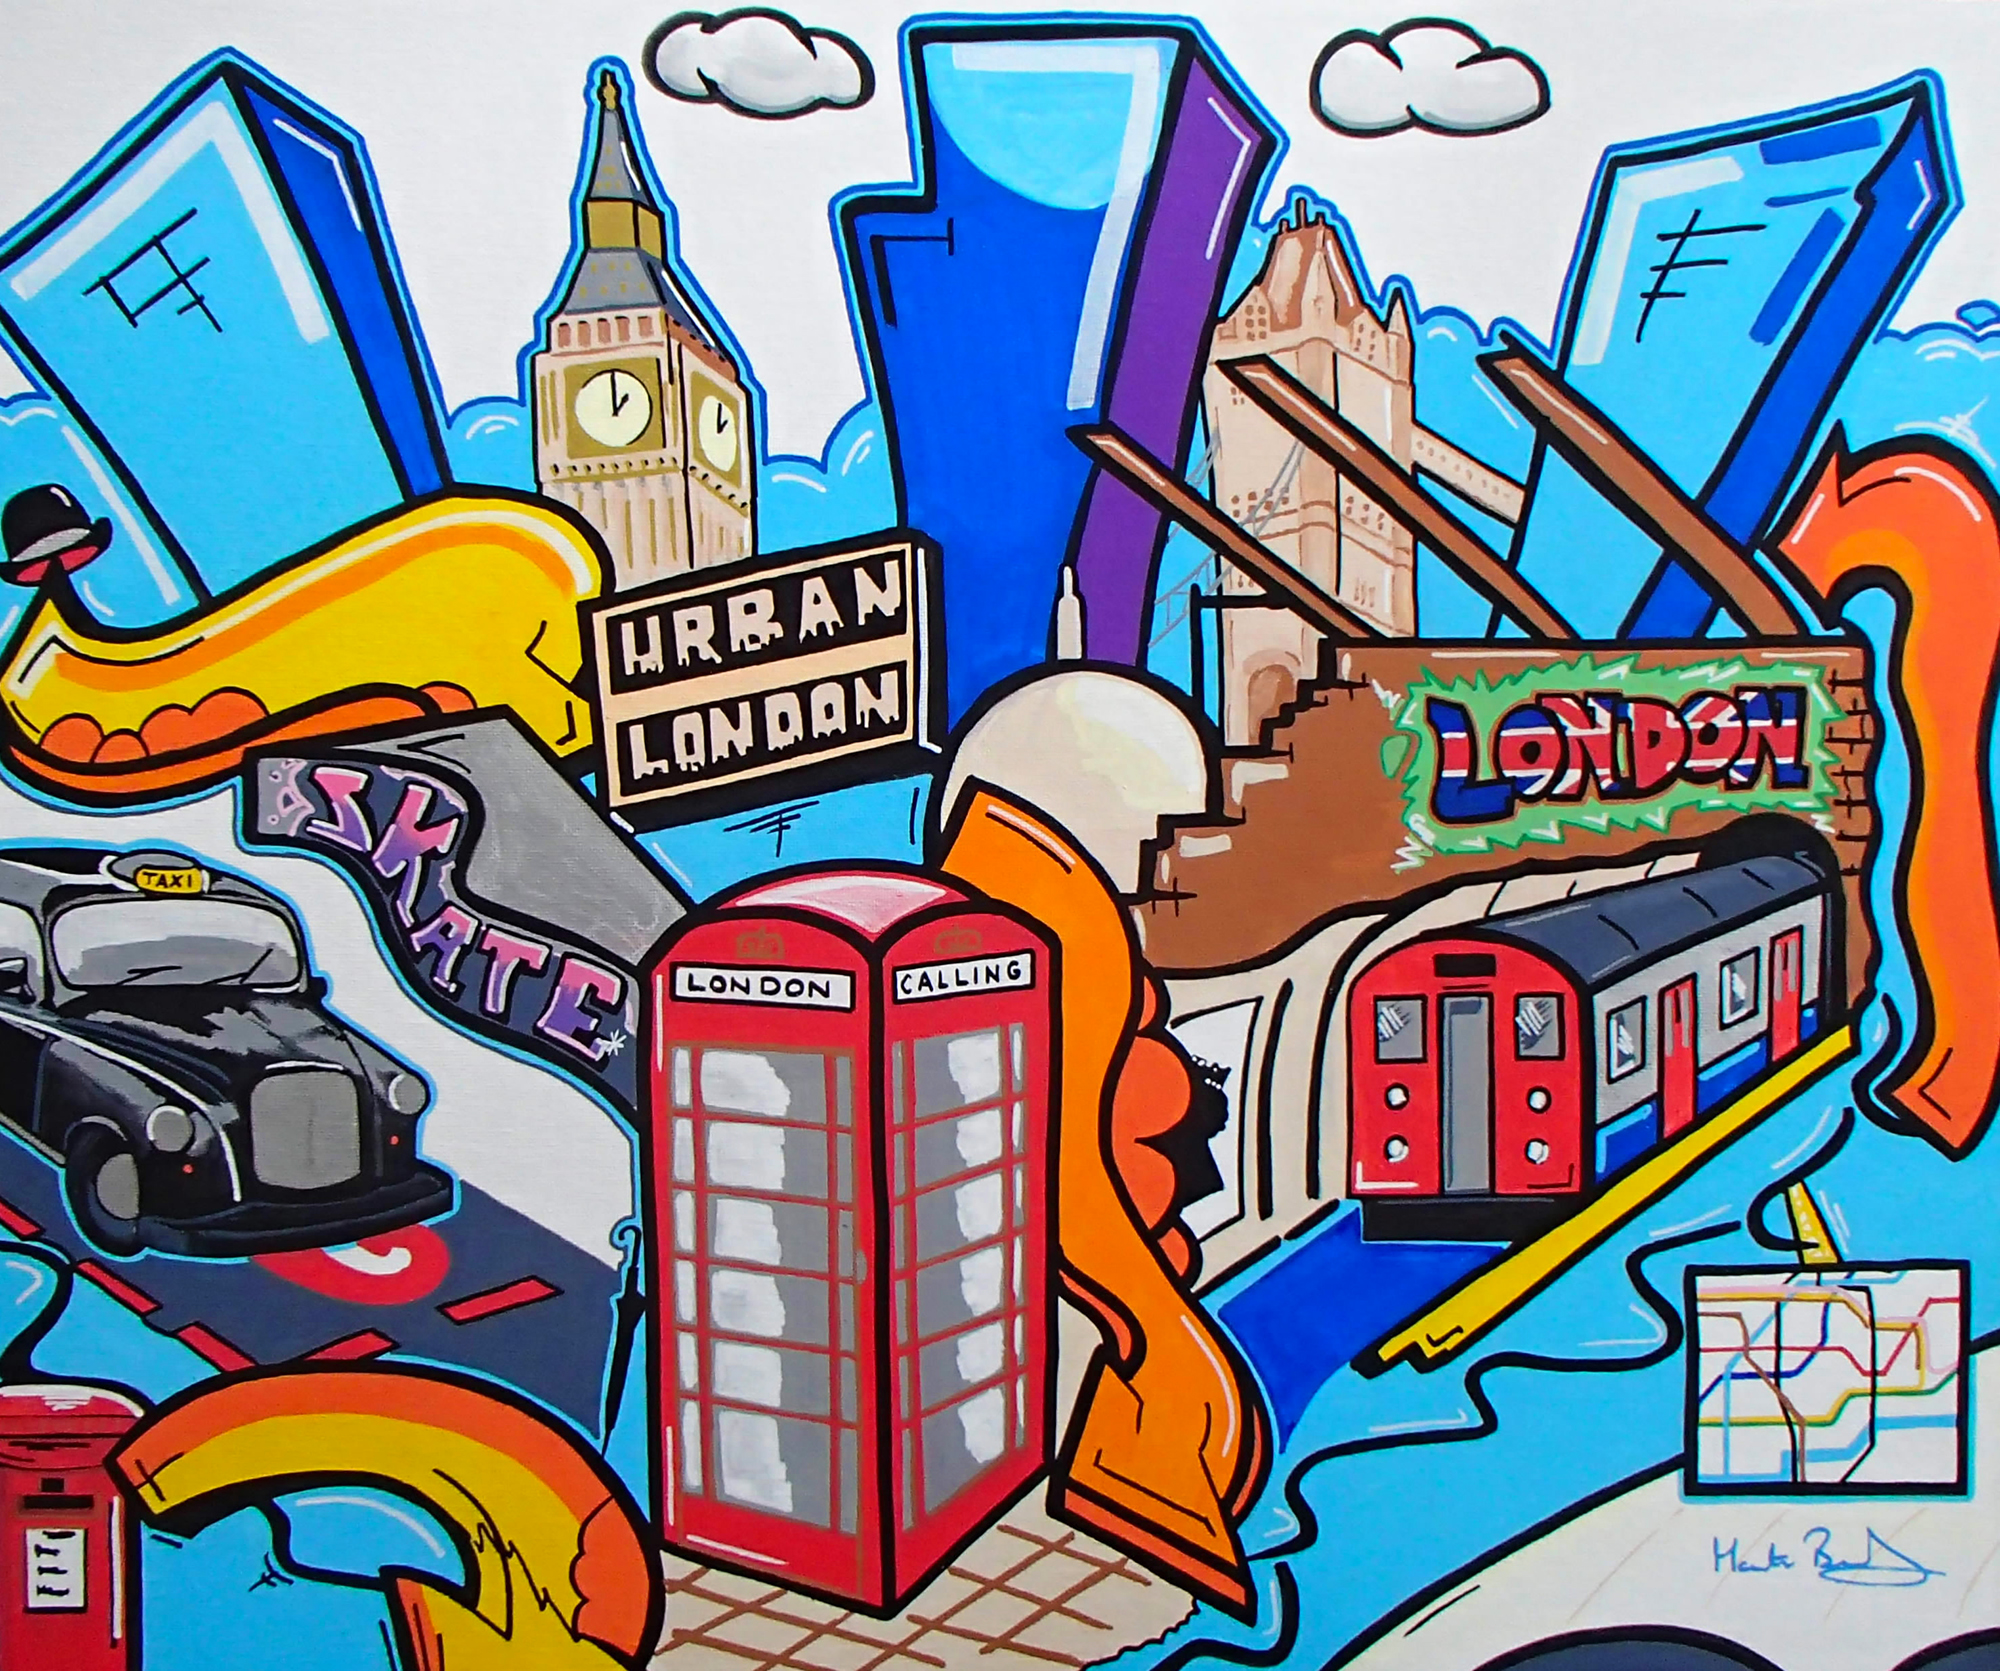 Available - Framed, London Calling, £295